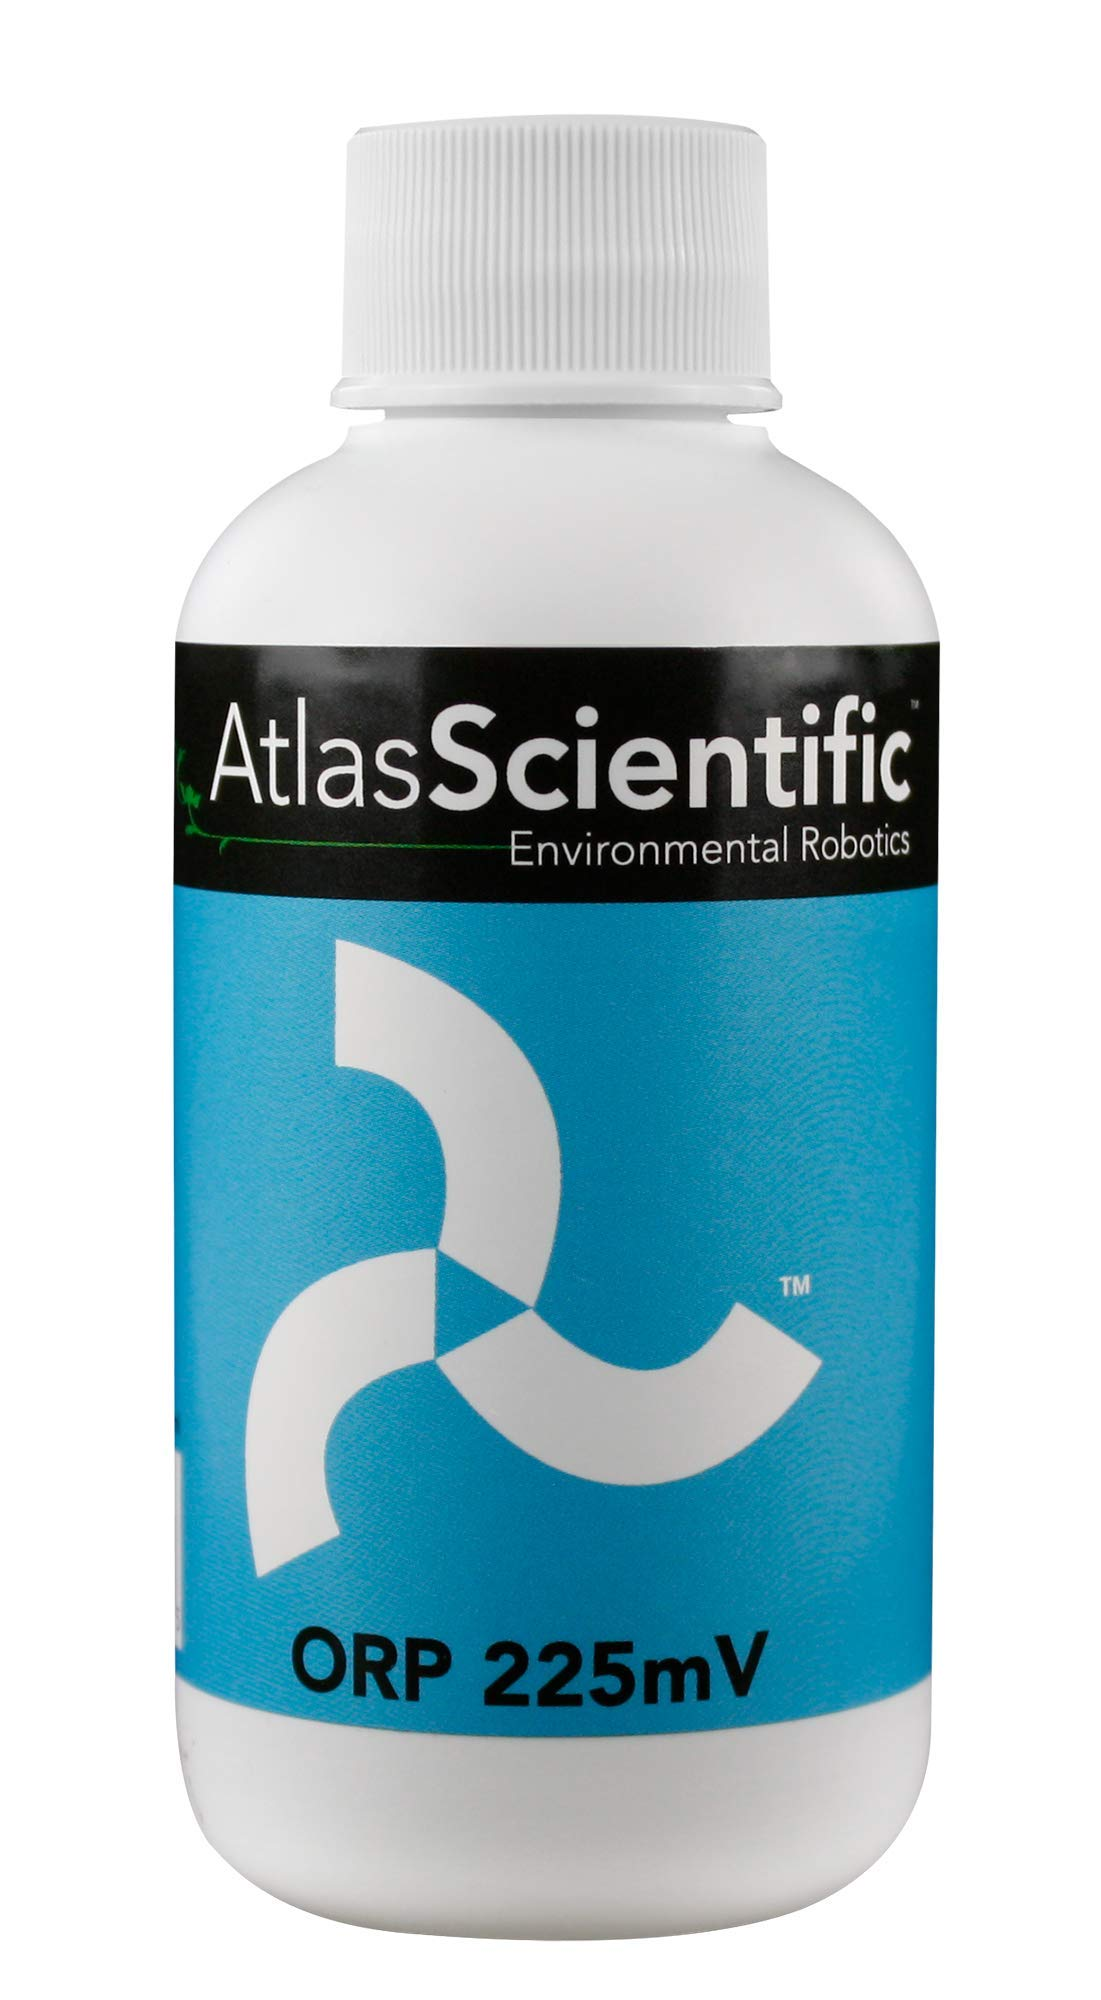 Atlas Scientific ORP Oxidation-Reduction Potential 225mV Calibration Solution 125ml (4oz)